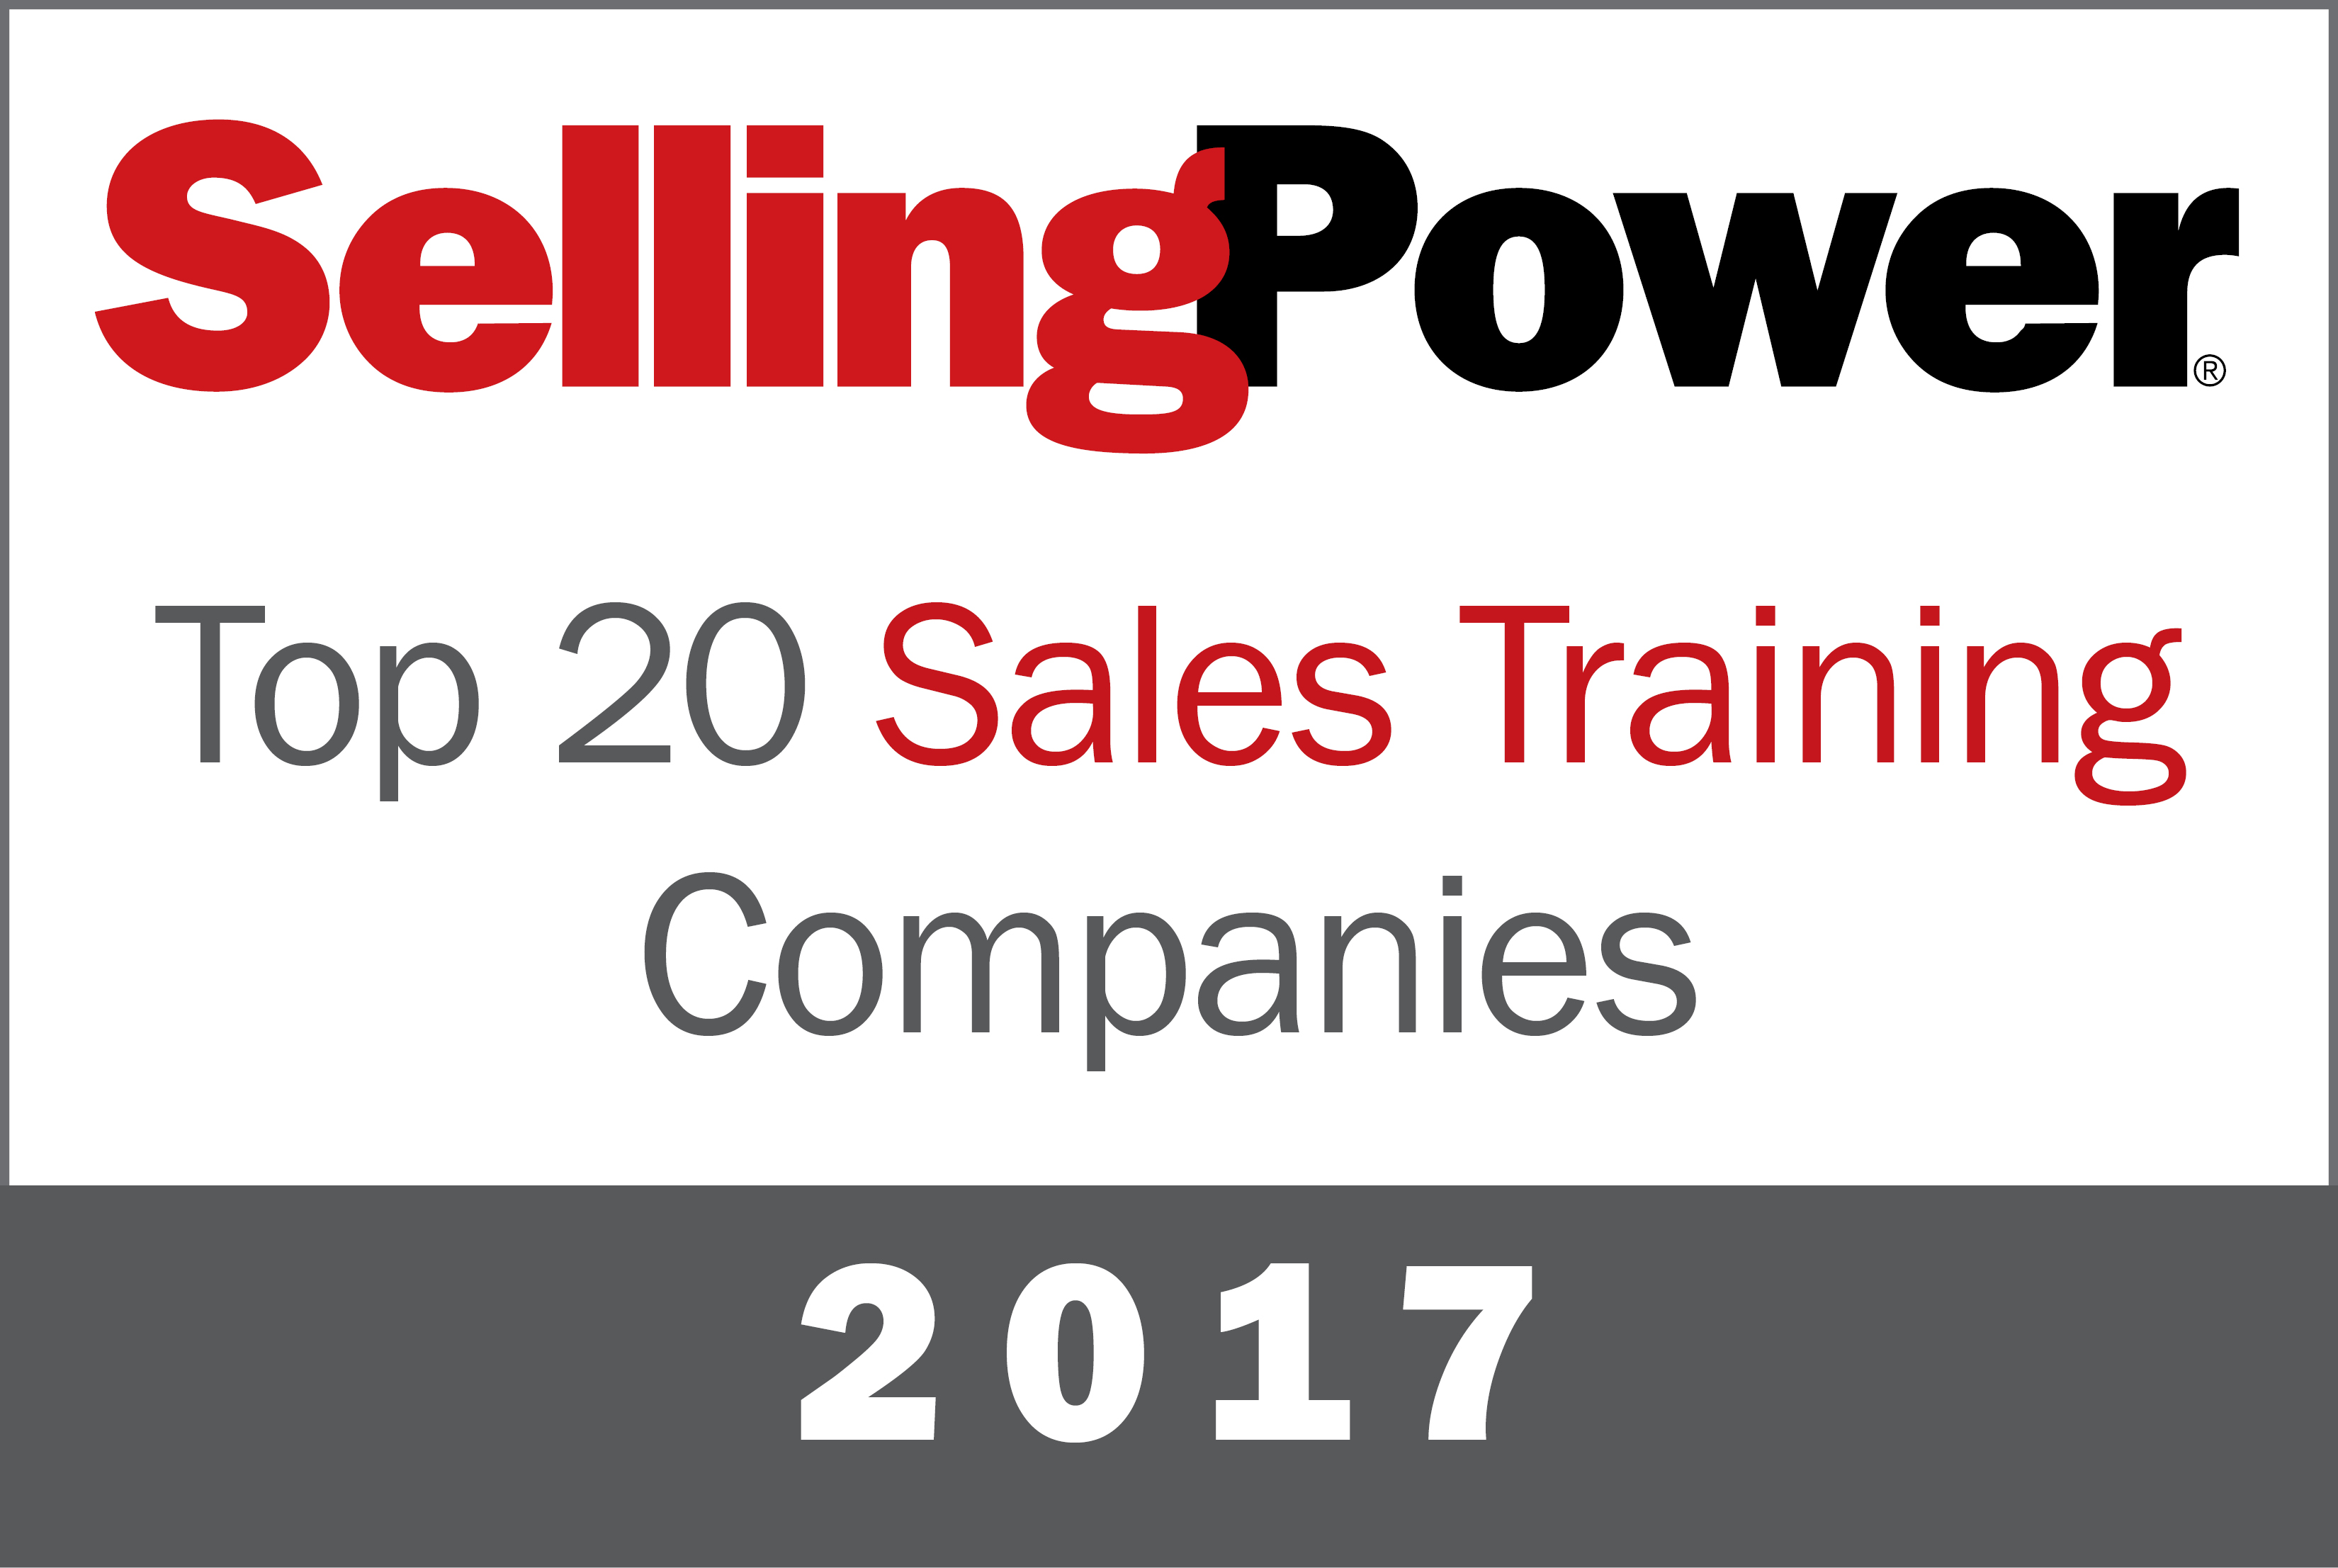 Top 20 Sales Training Companies 2017 - Selling Power